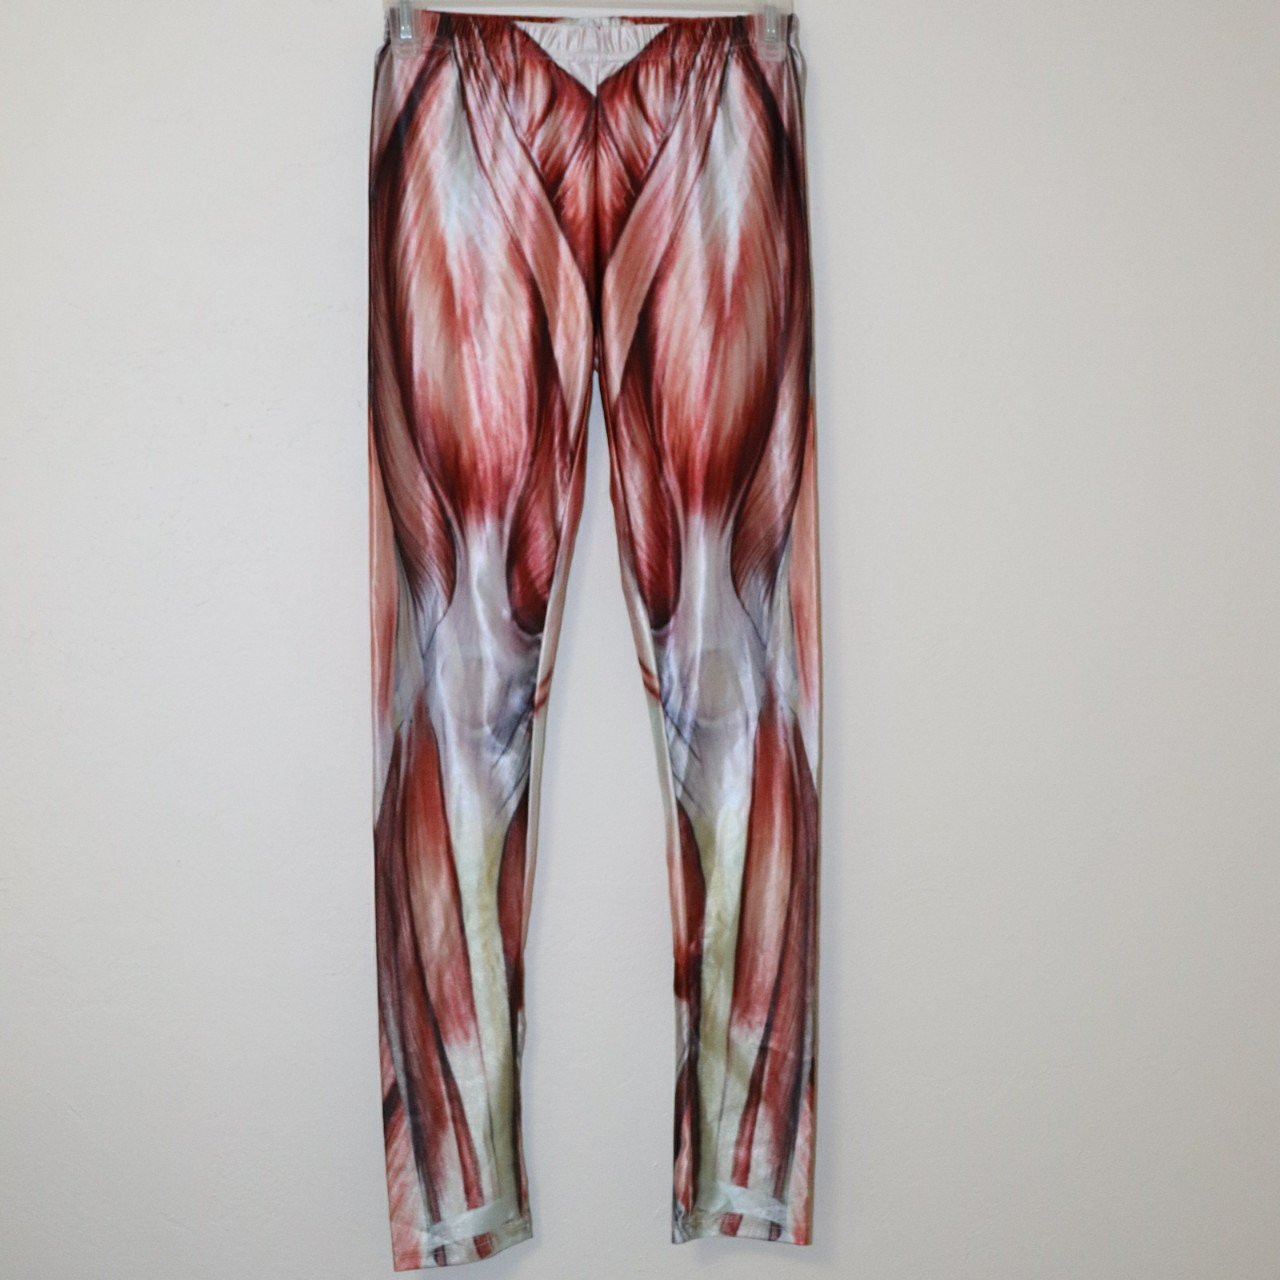 ee9aaa6262d097 @liquidhaze. last month. Green Bay, Brown County, United States. Muscle  leggings. All leggings buy 2 get one free.